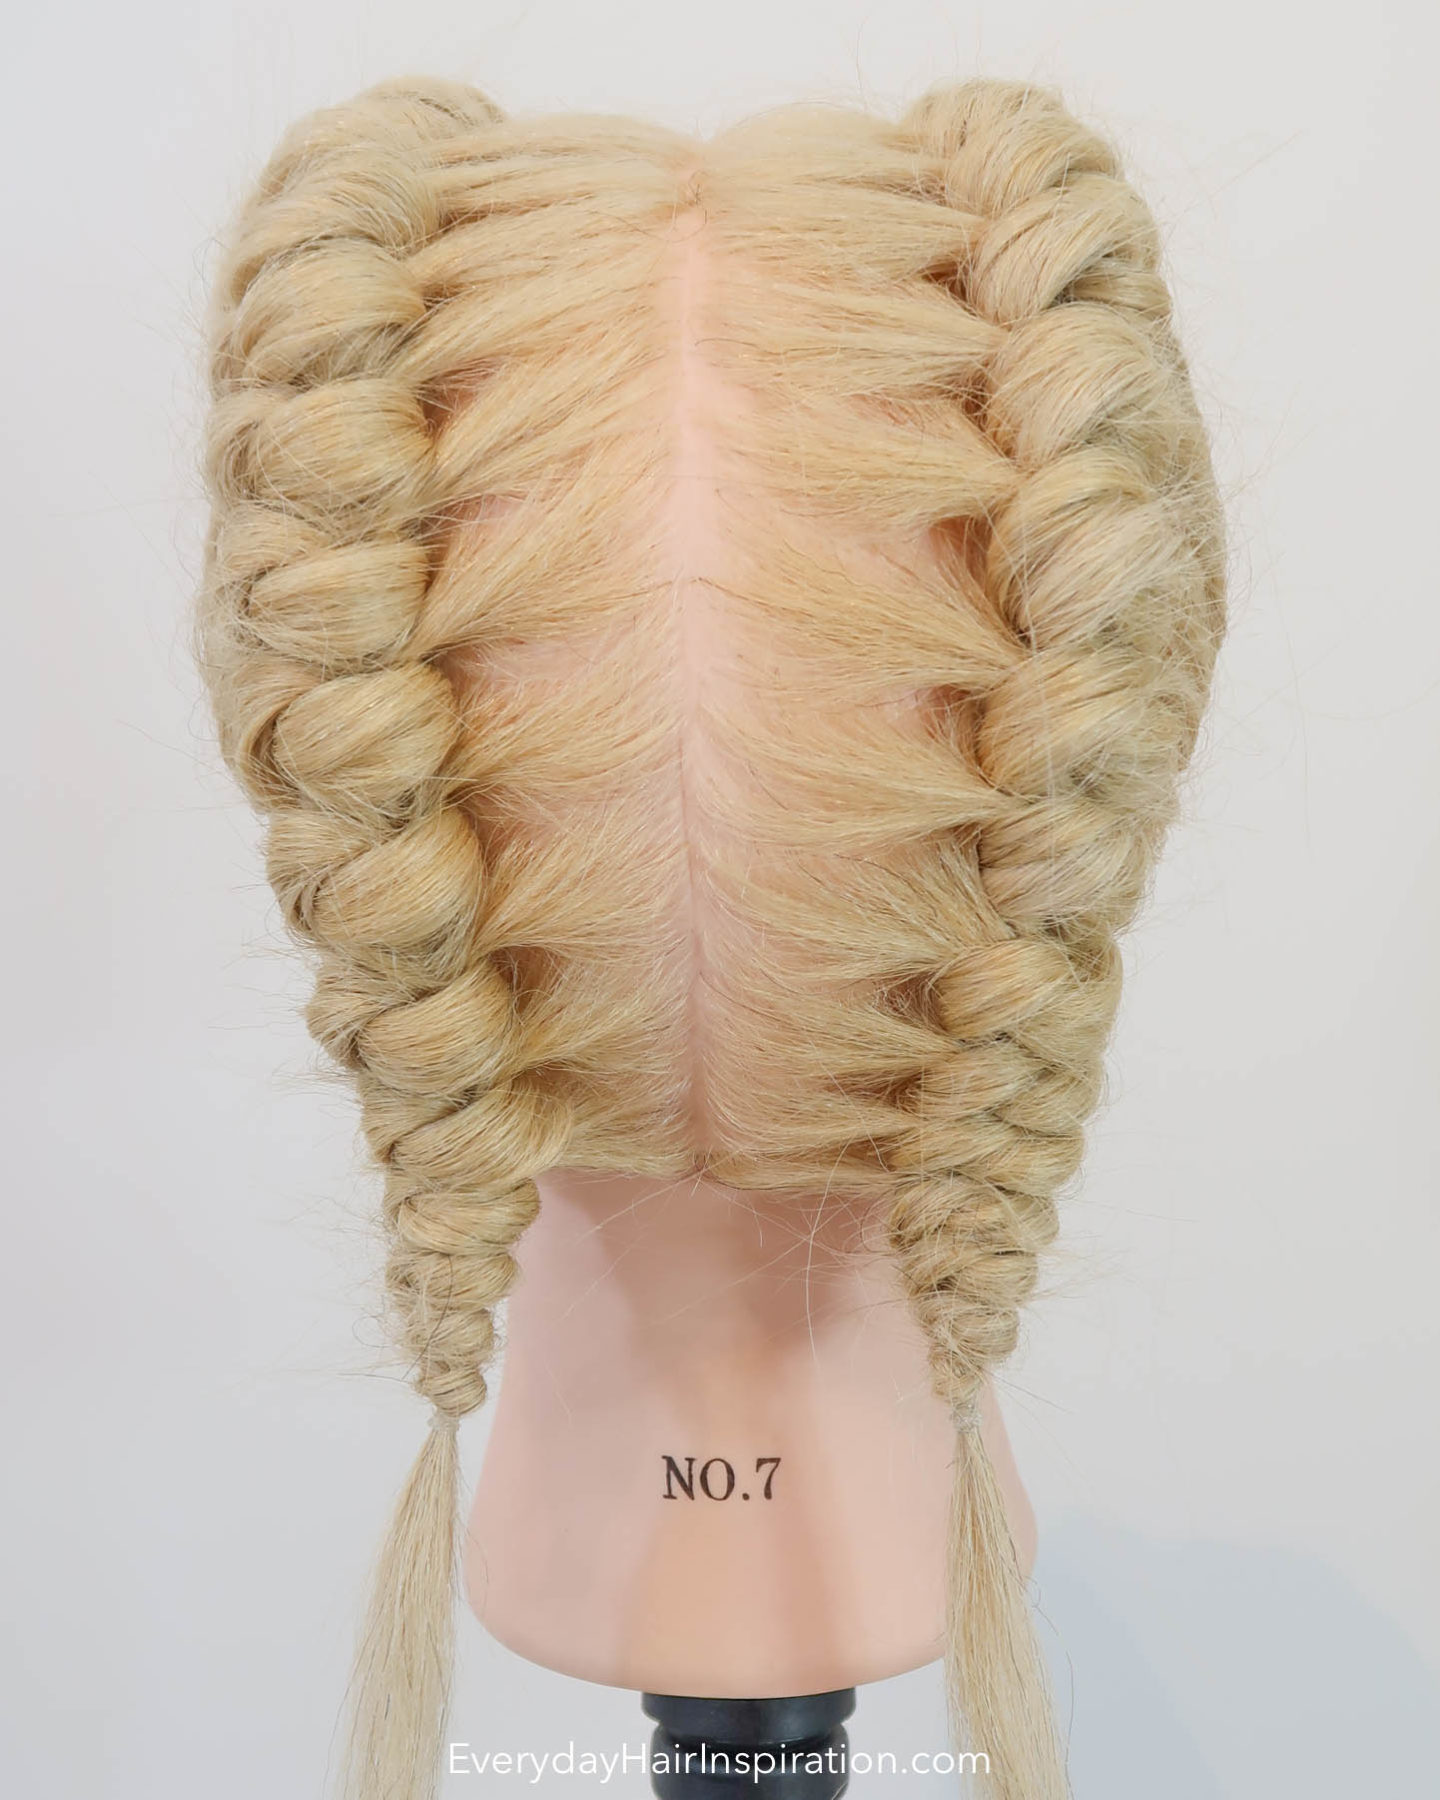 Blonde hairdresser head, seen from the back with double knot braids